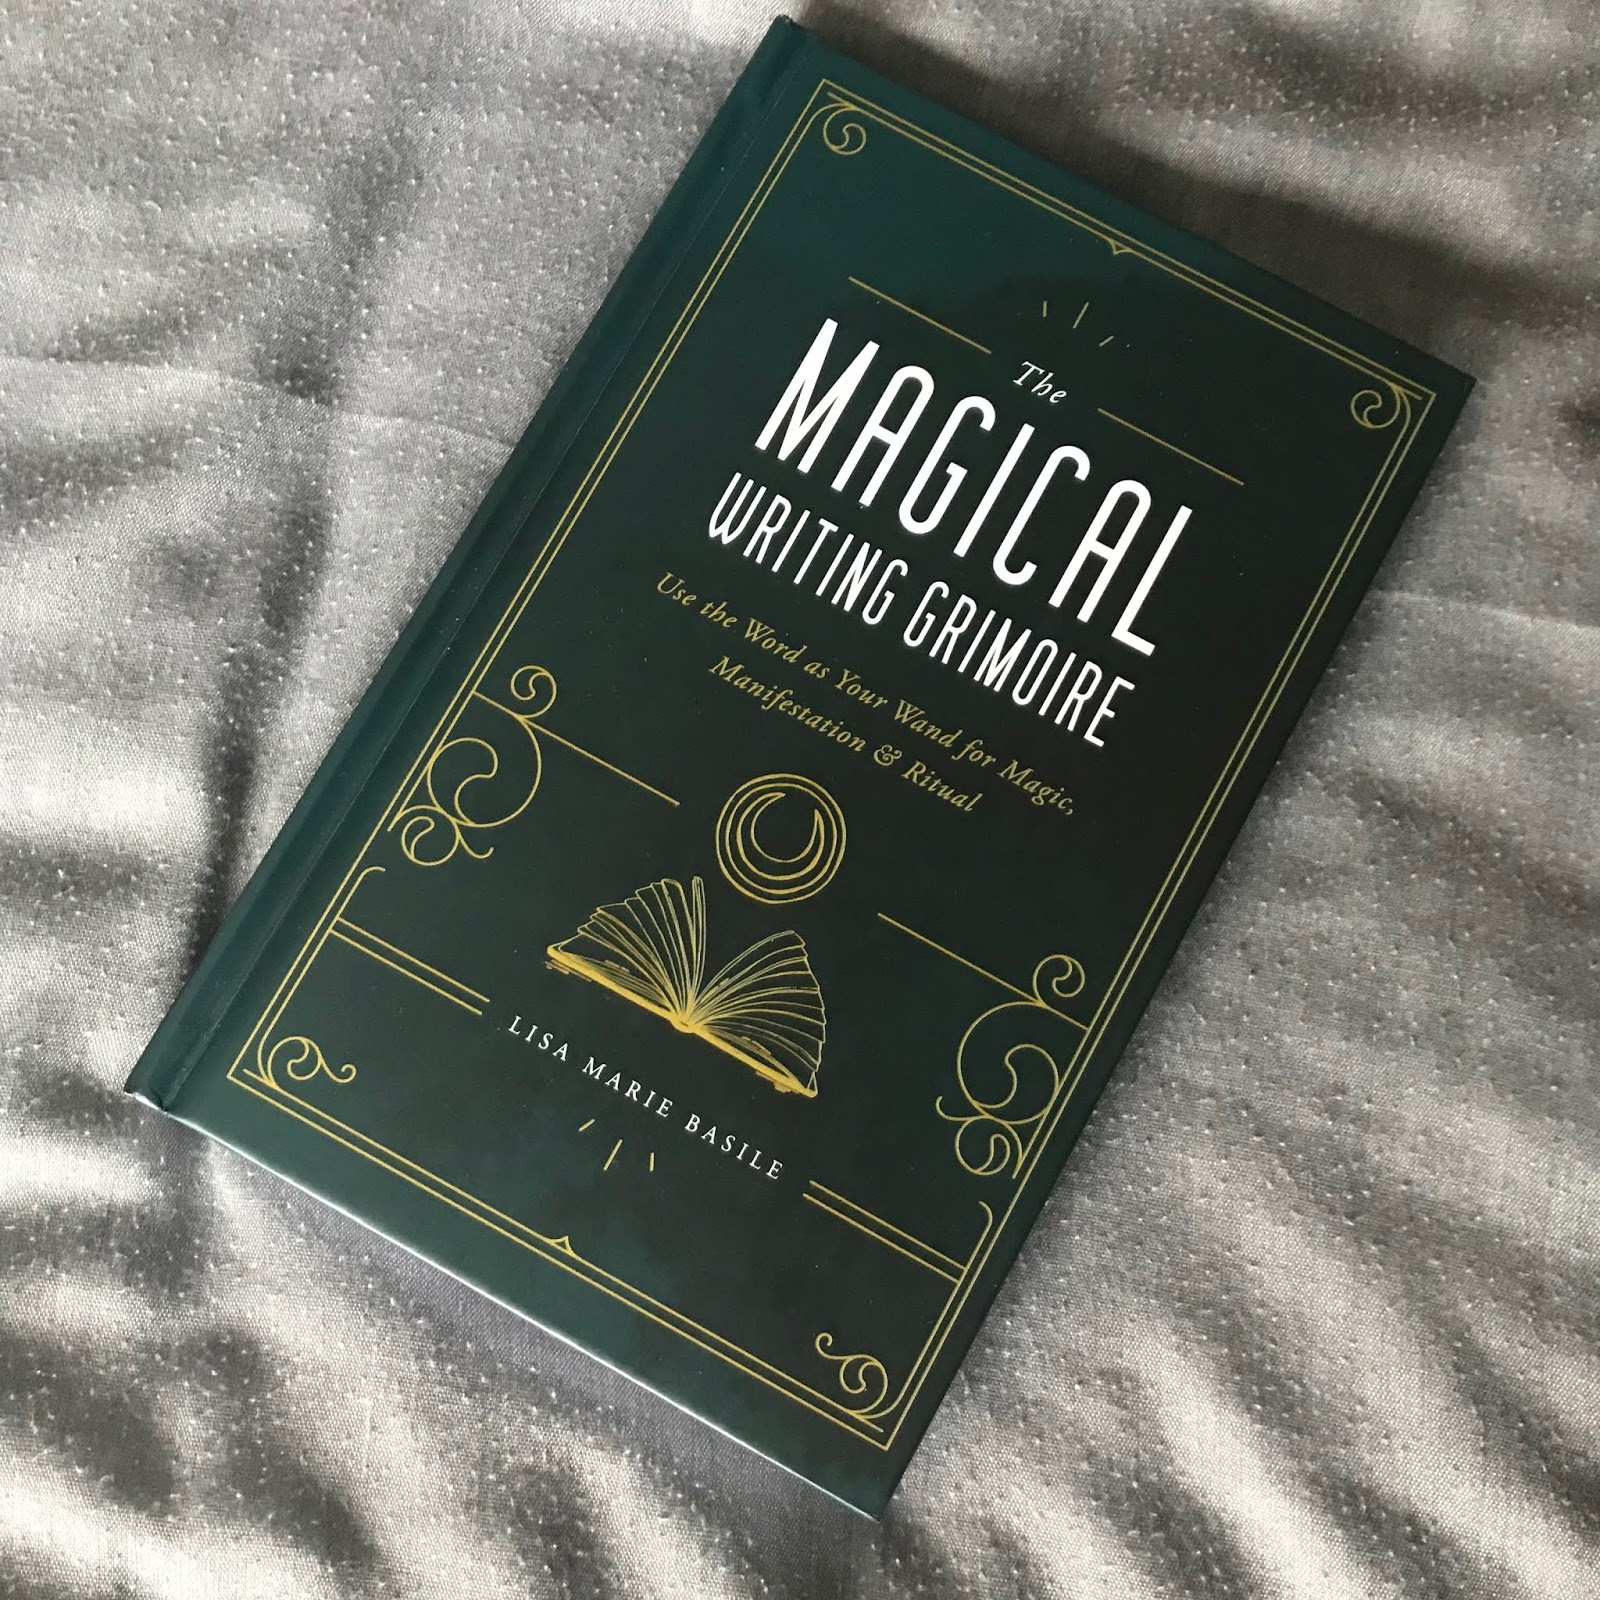 The Magical Writing Grimoire by Lisa Marie Basile